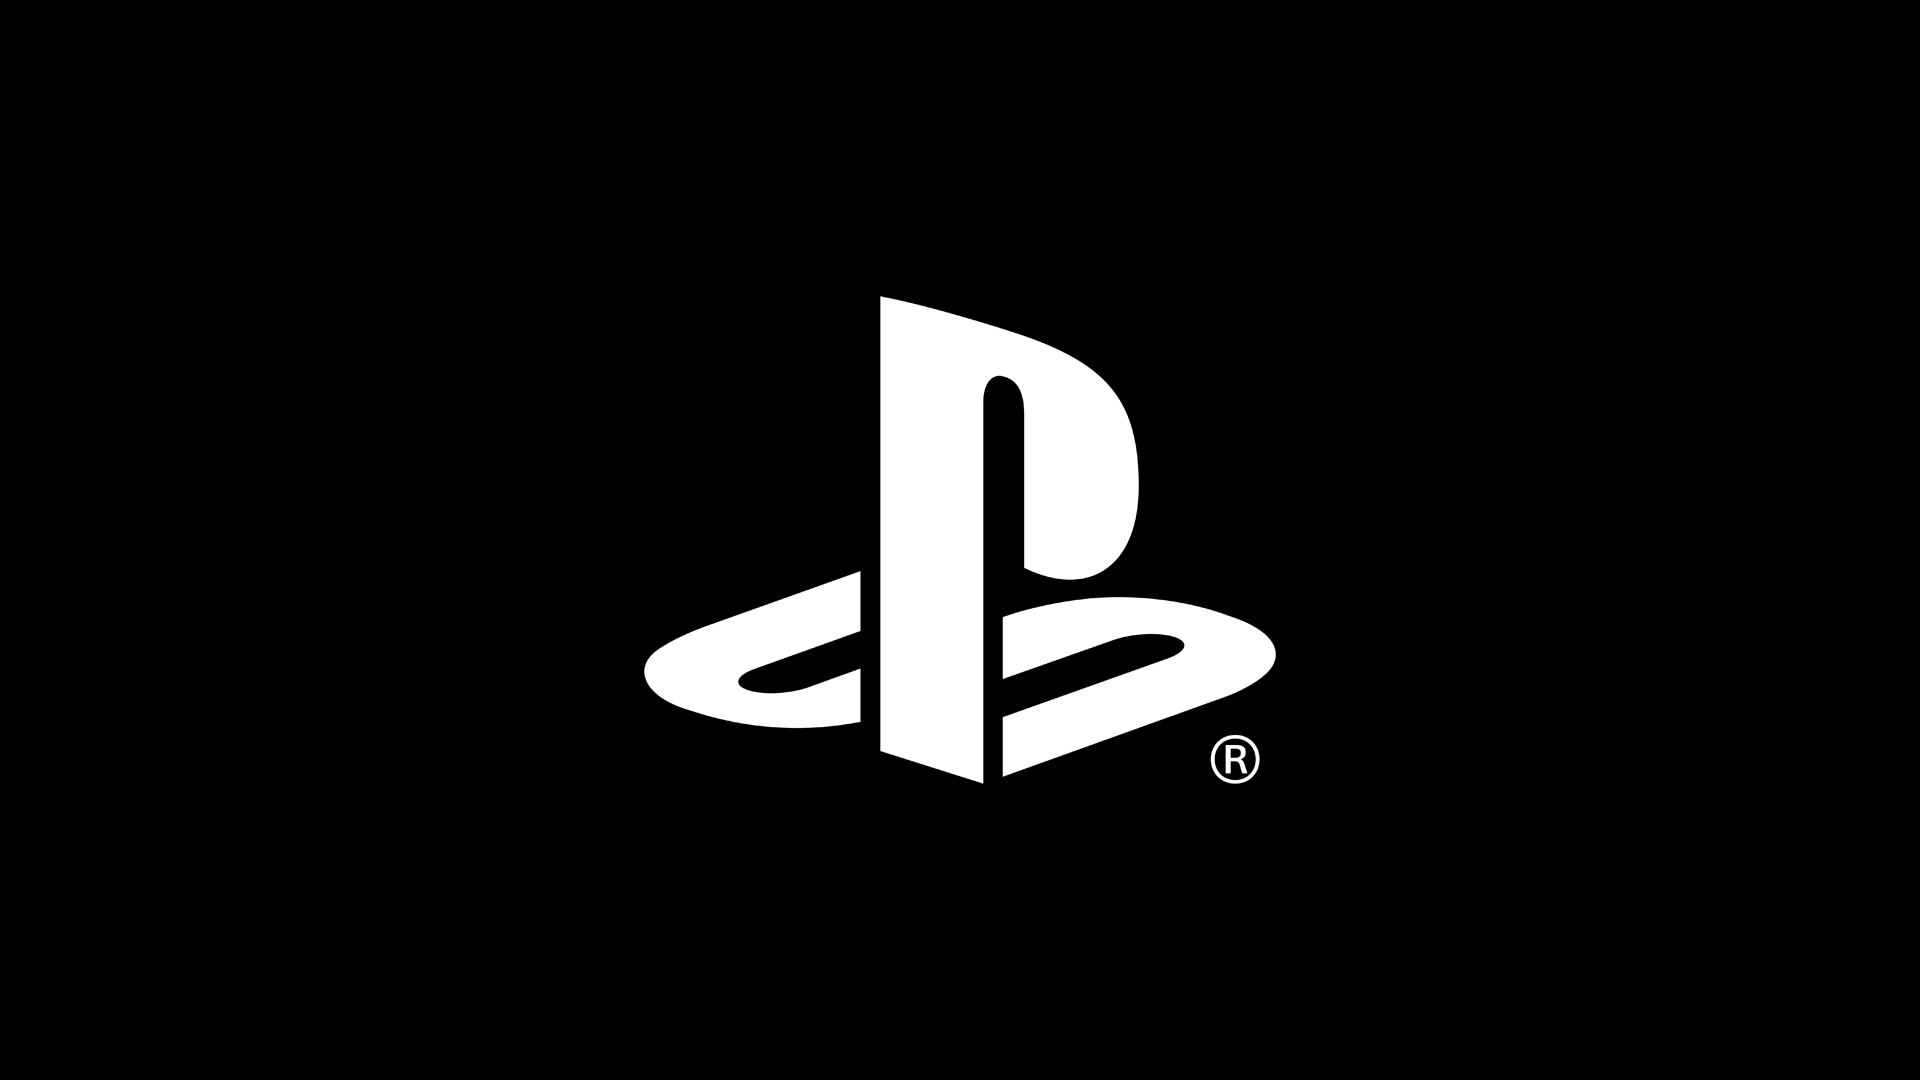 PlayStation Logo full